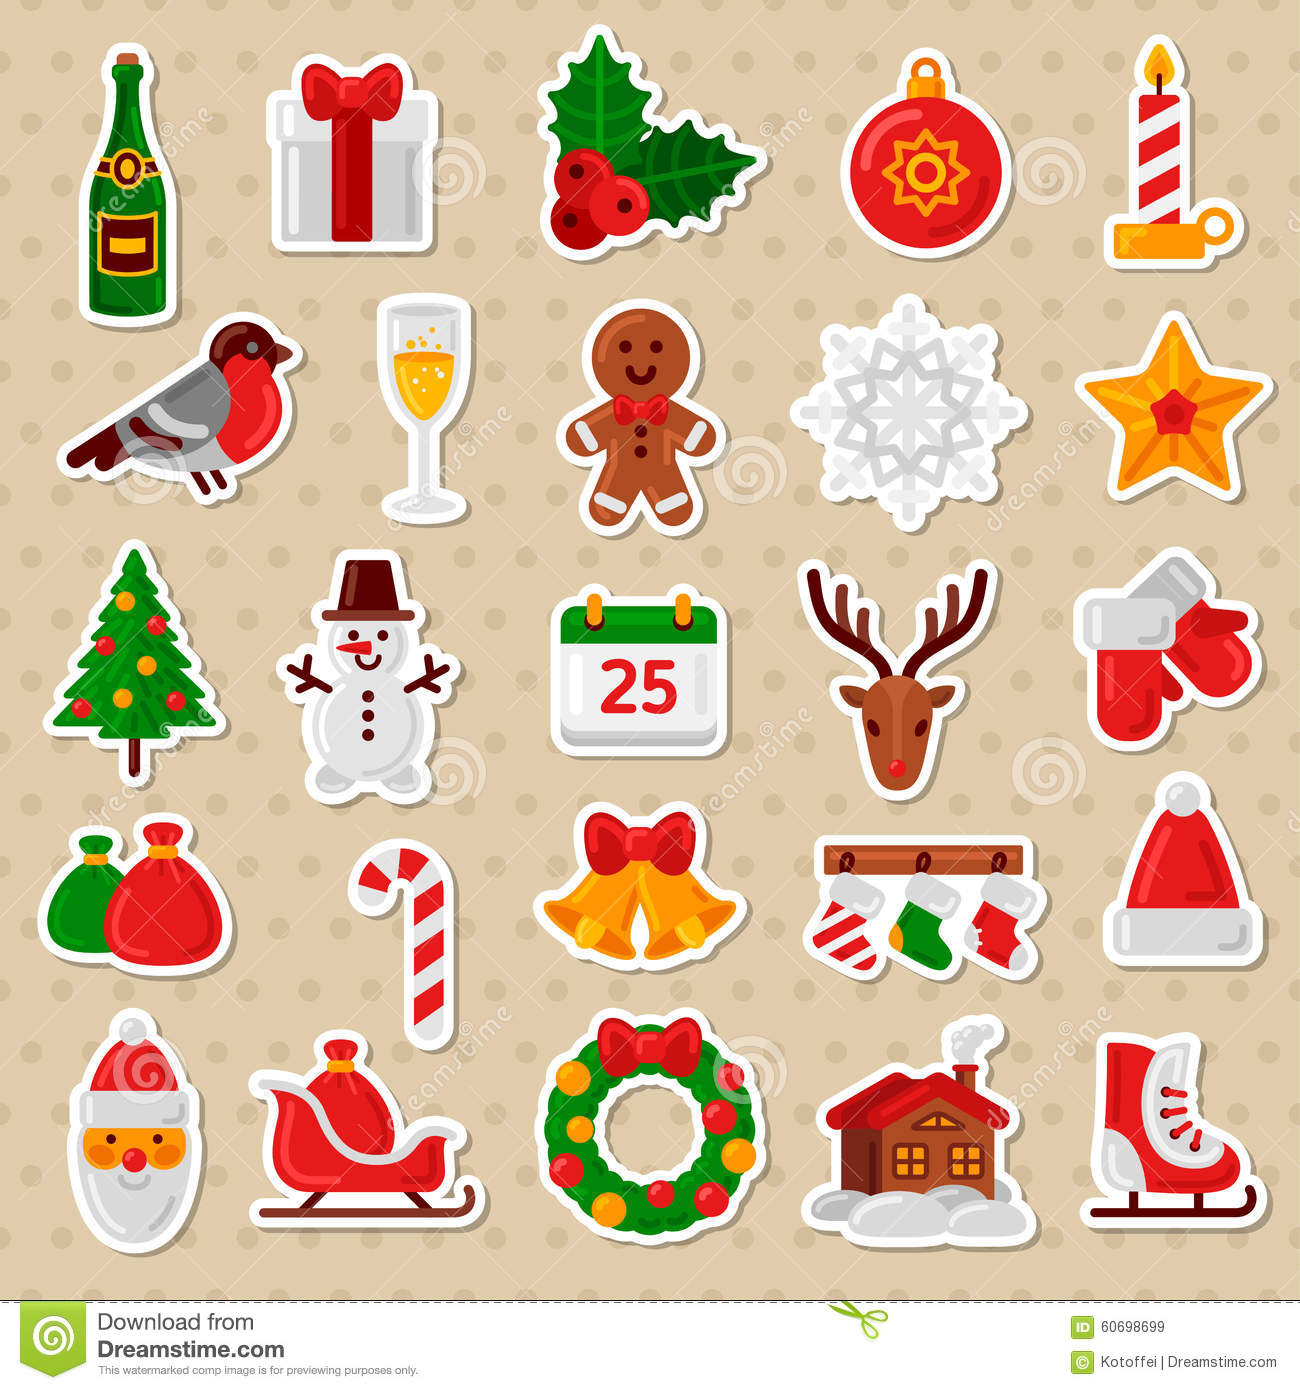 Sticker Stencils For Walls Merry Christmas Flat Icons Happy New Year Stickers Stock